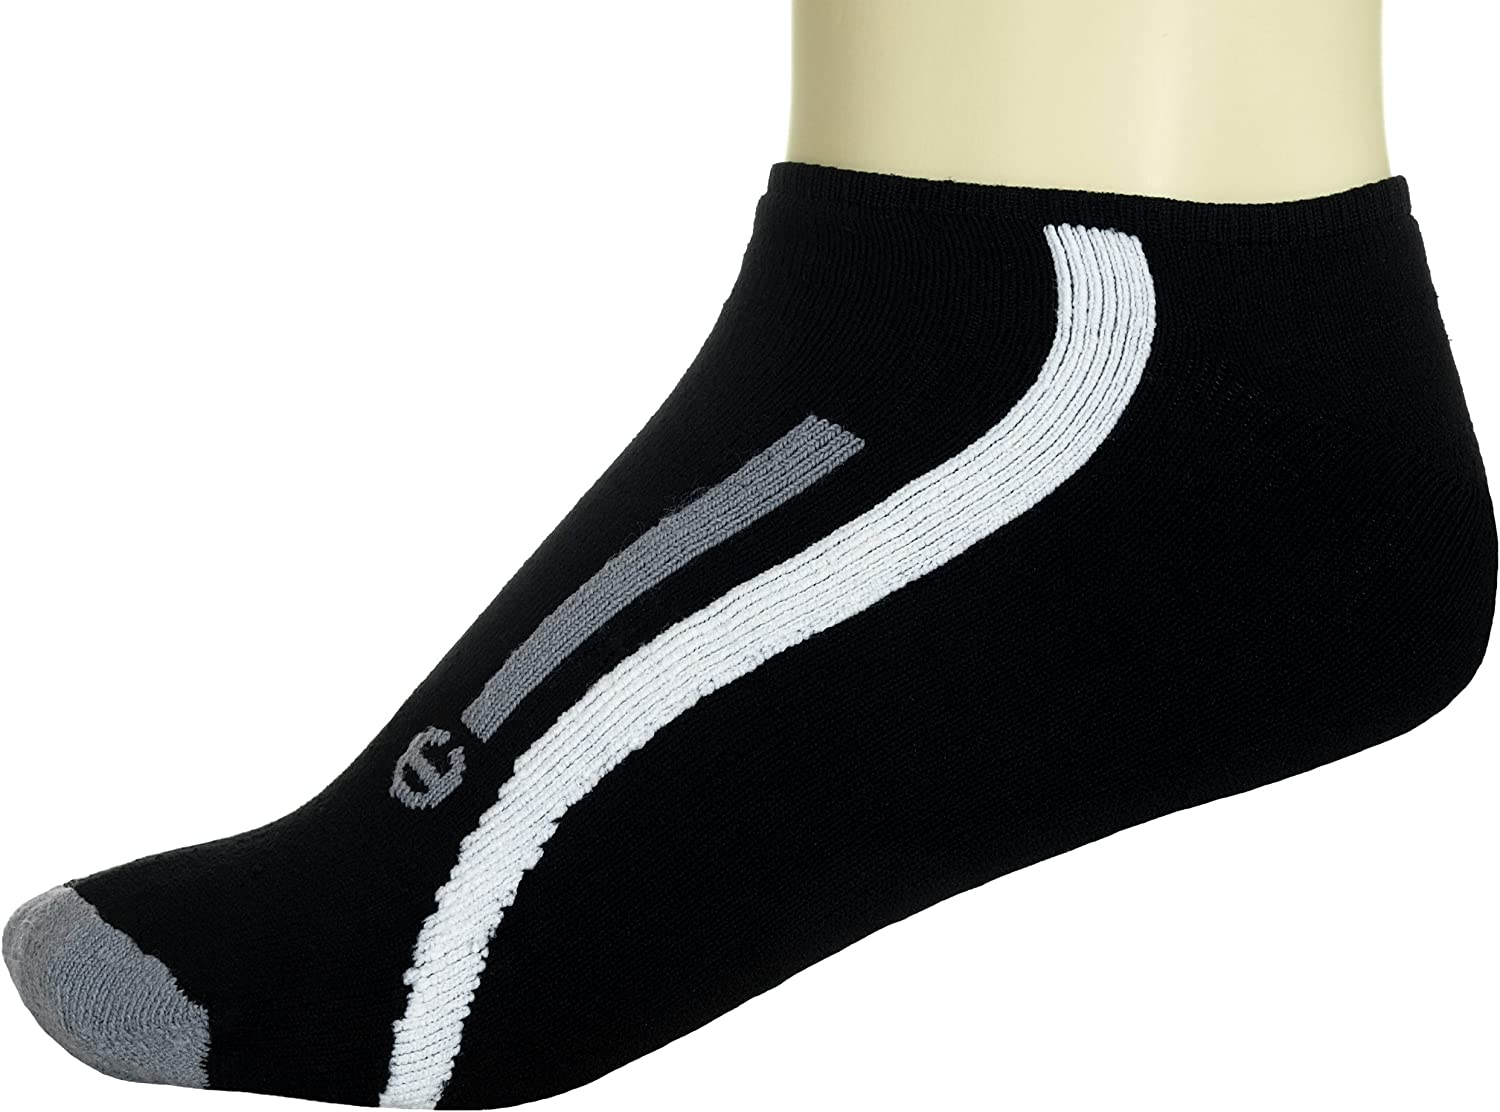 Mens No Show Double Dry High Performance Striped Sport Socks 2-Pack